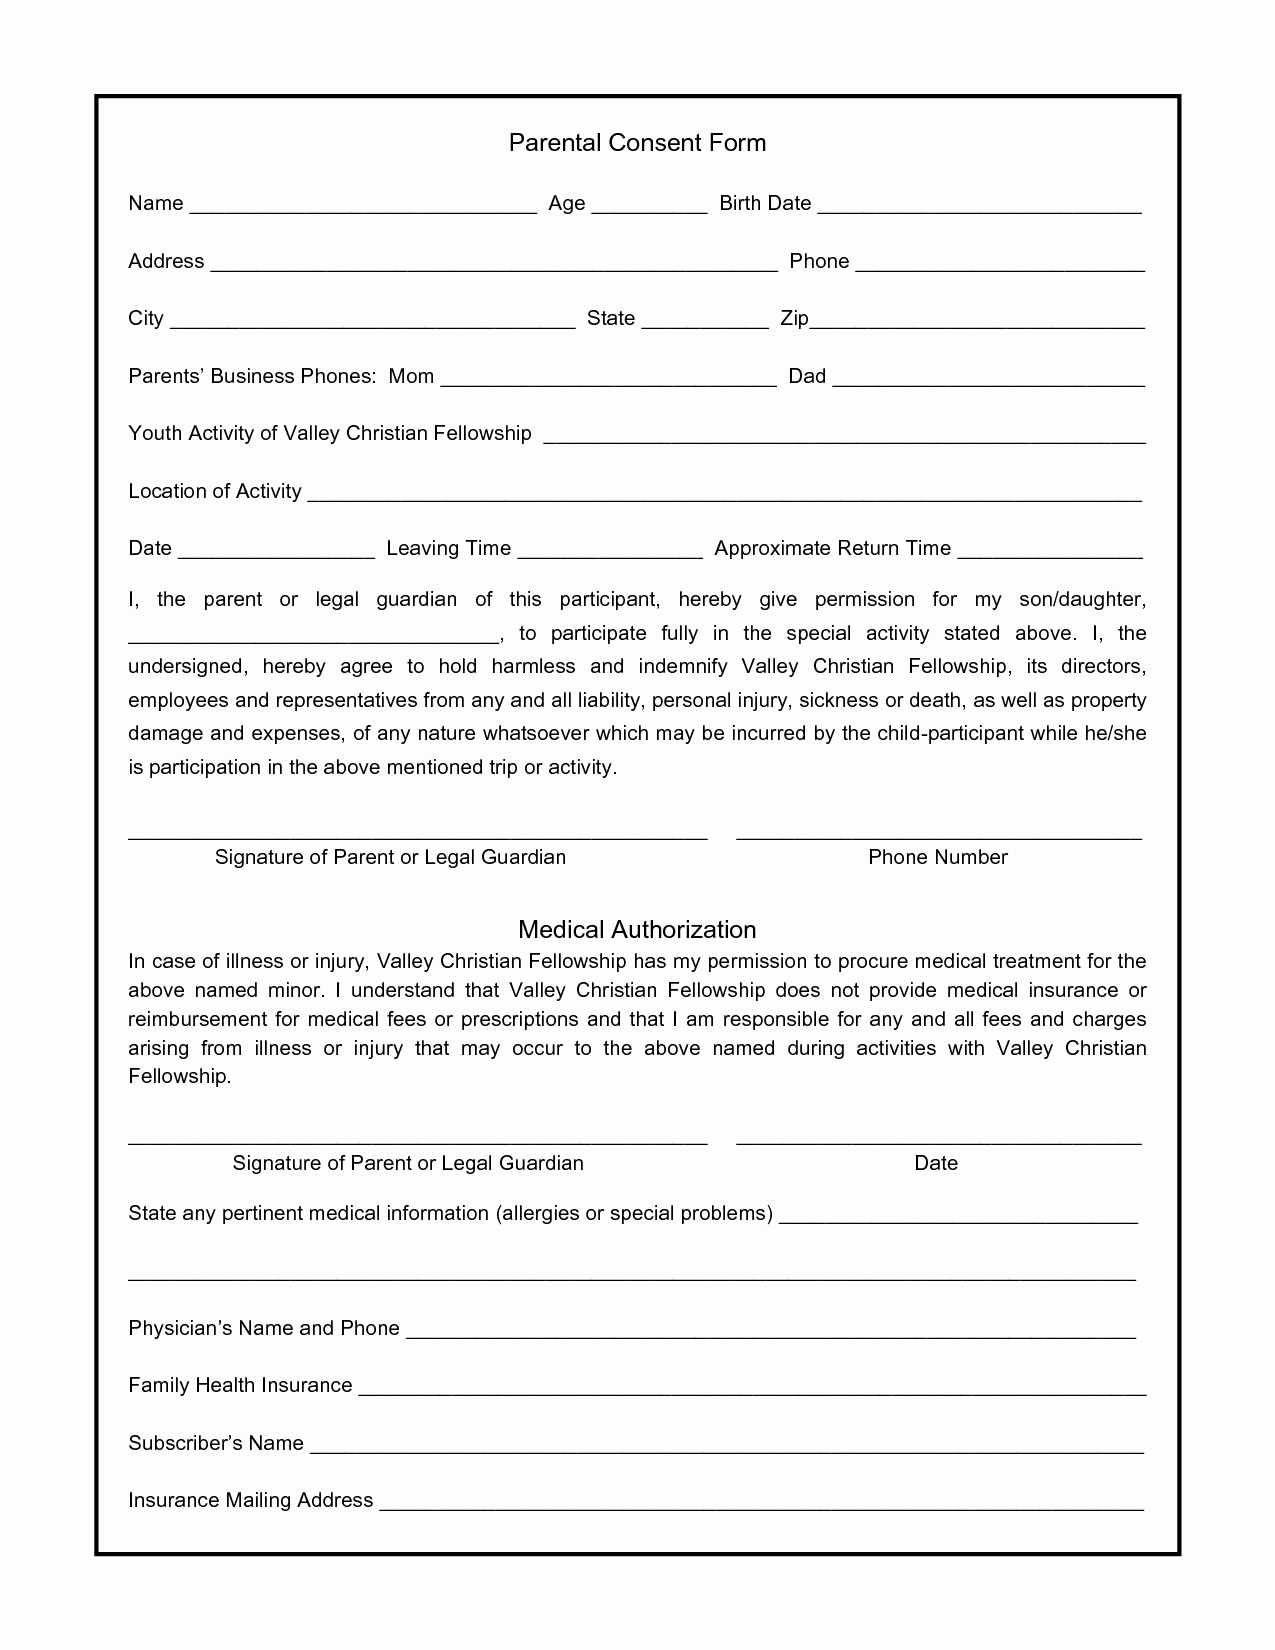 Medical Consent form Template Elegant Parental Consent form for S Swifter Parental